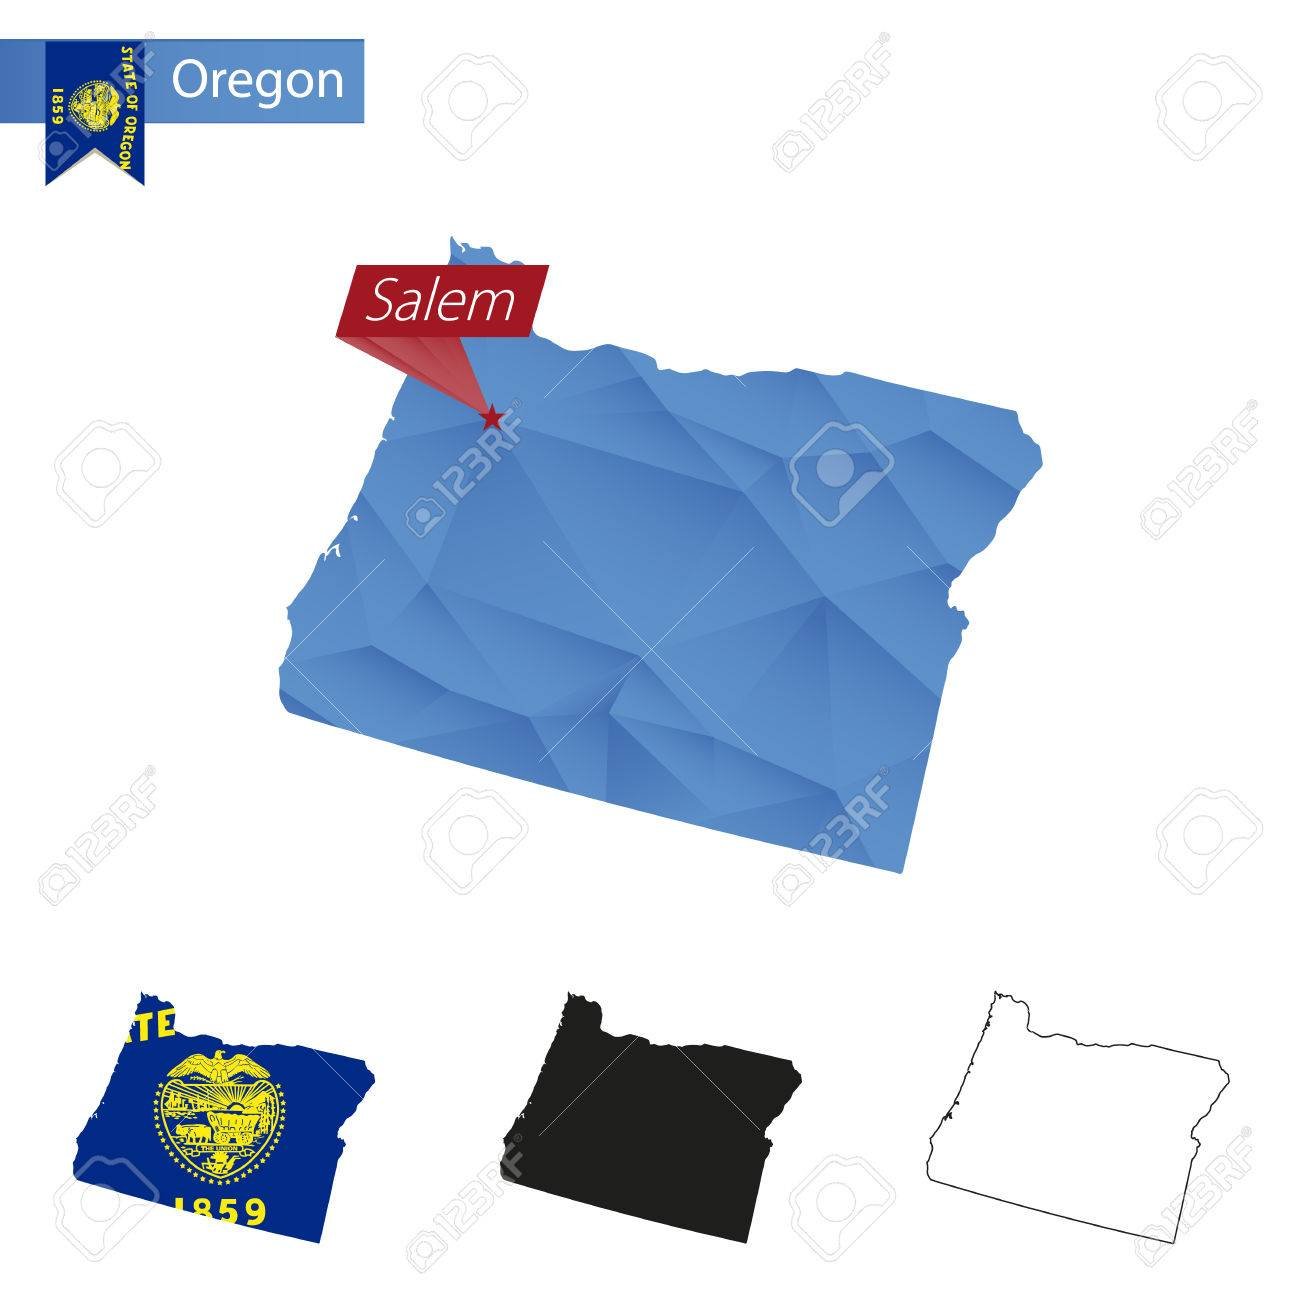 Capital Of Oregon Map.State Of Oregon Blue Low Poly Map With Capital Salem Versions